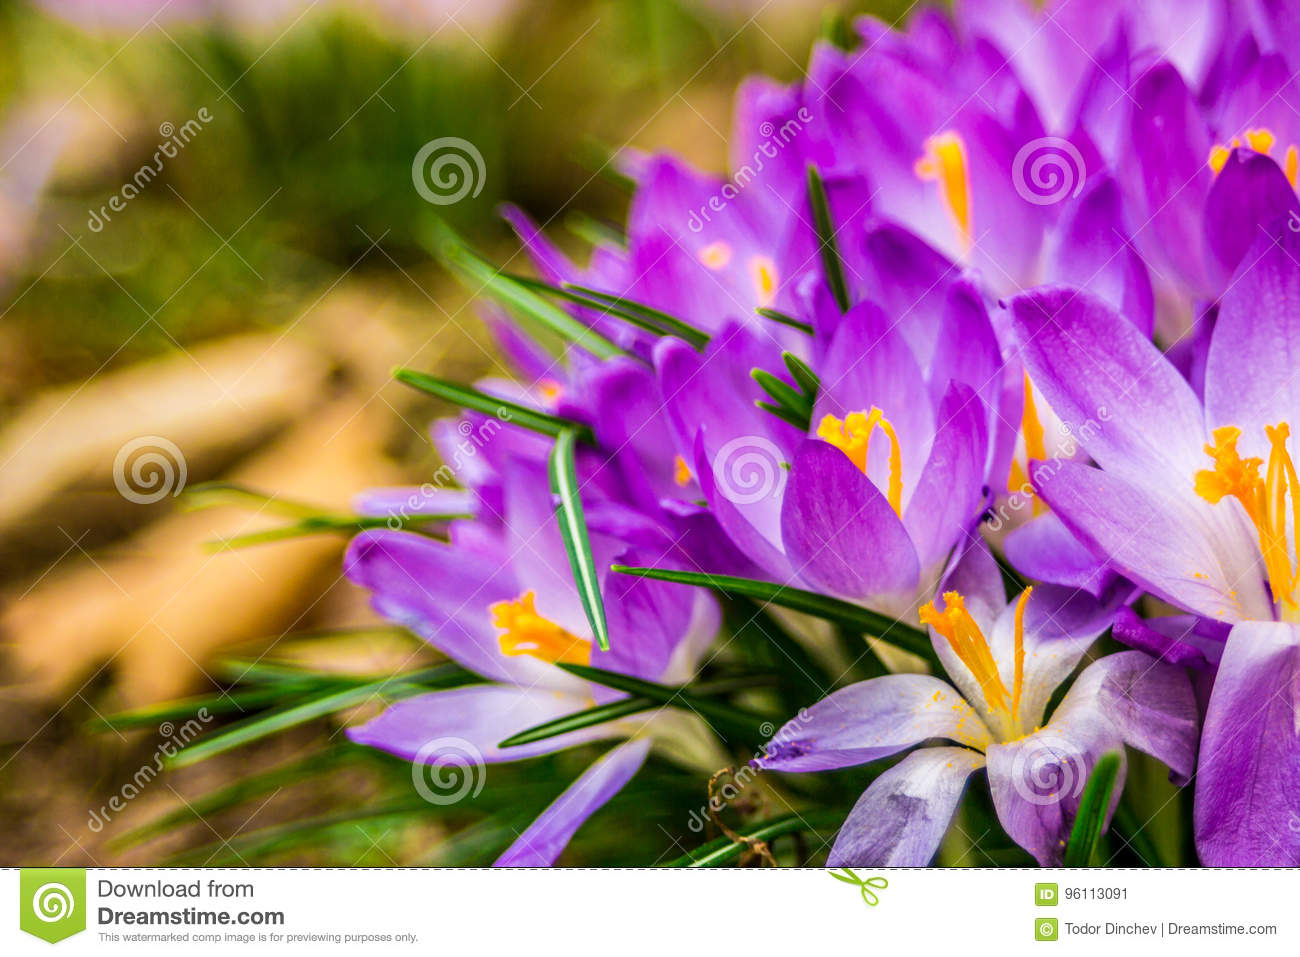 Crocus Plural Crocuses Or Croci Stock Image Image Of Park Flora